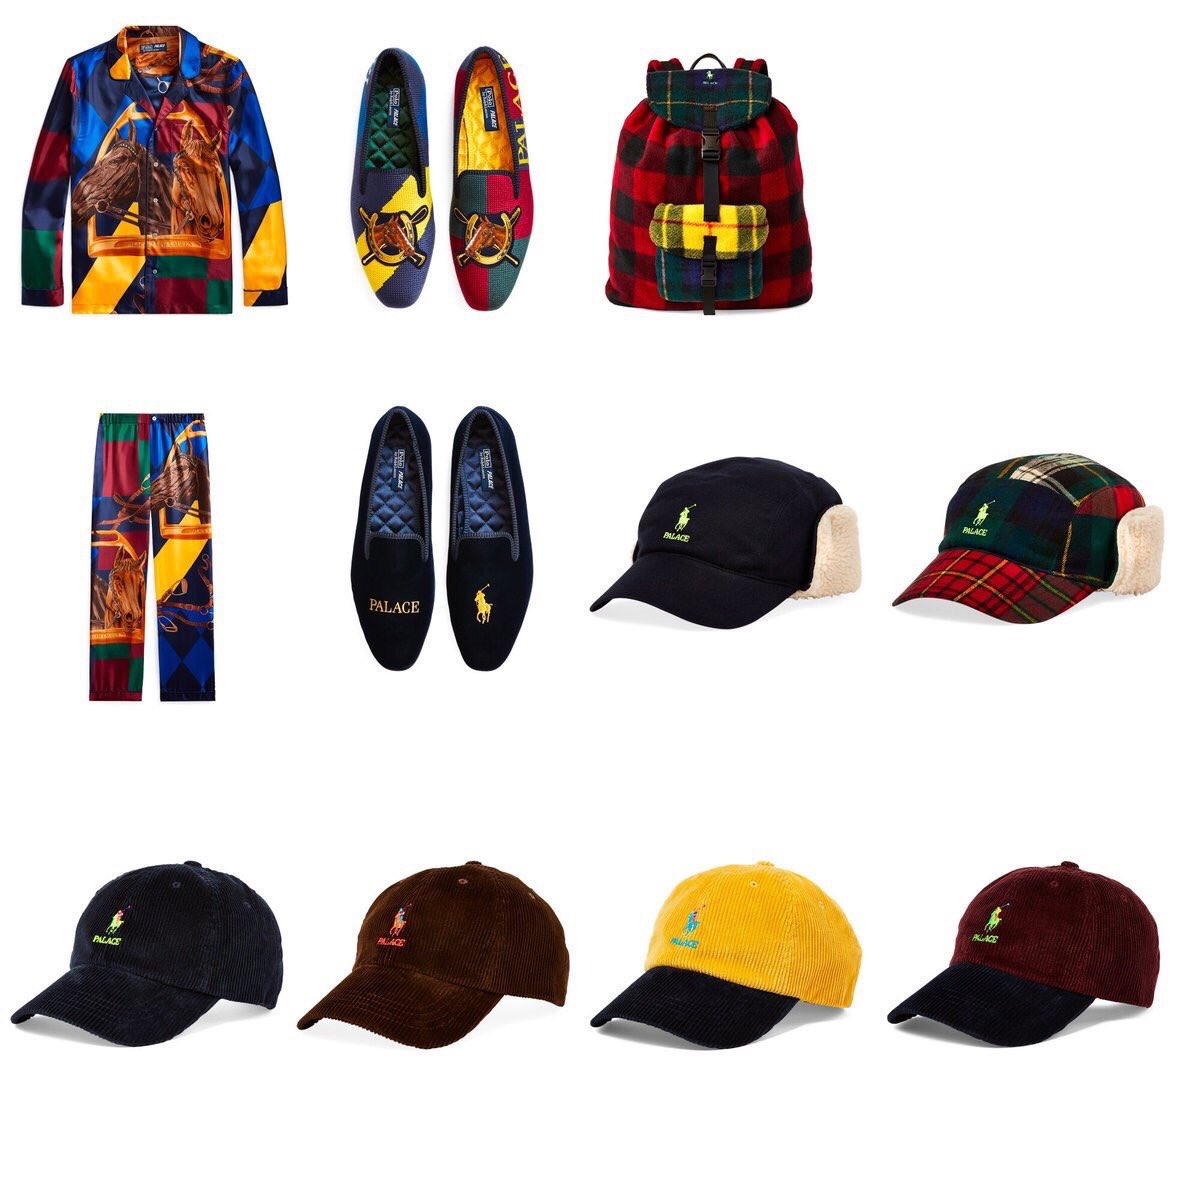 palaceskateboards-polo-ralph-lauren-2018aw-collaboration-items-release-20181110